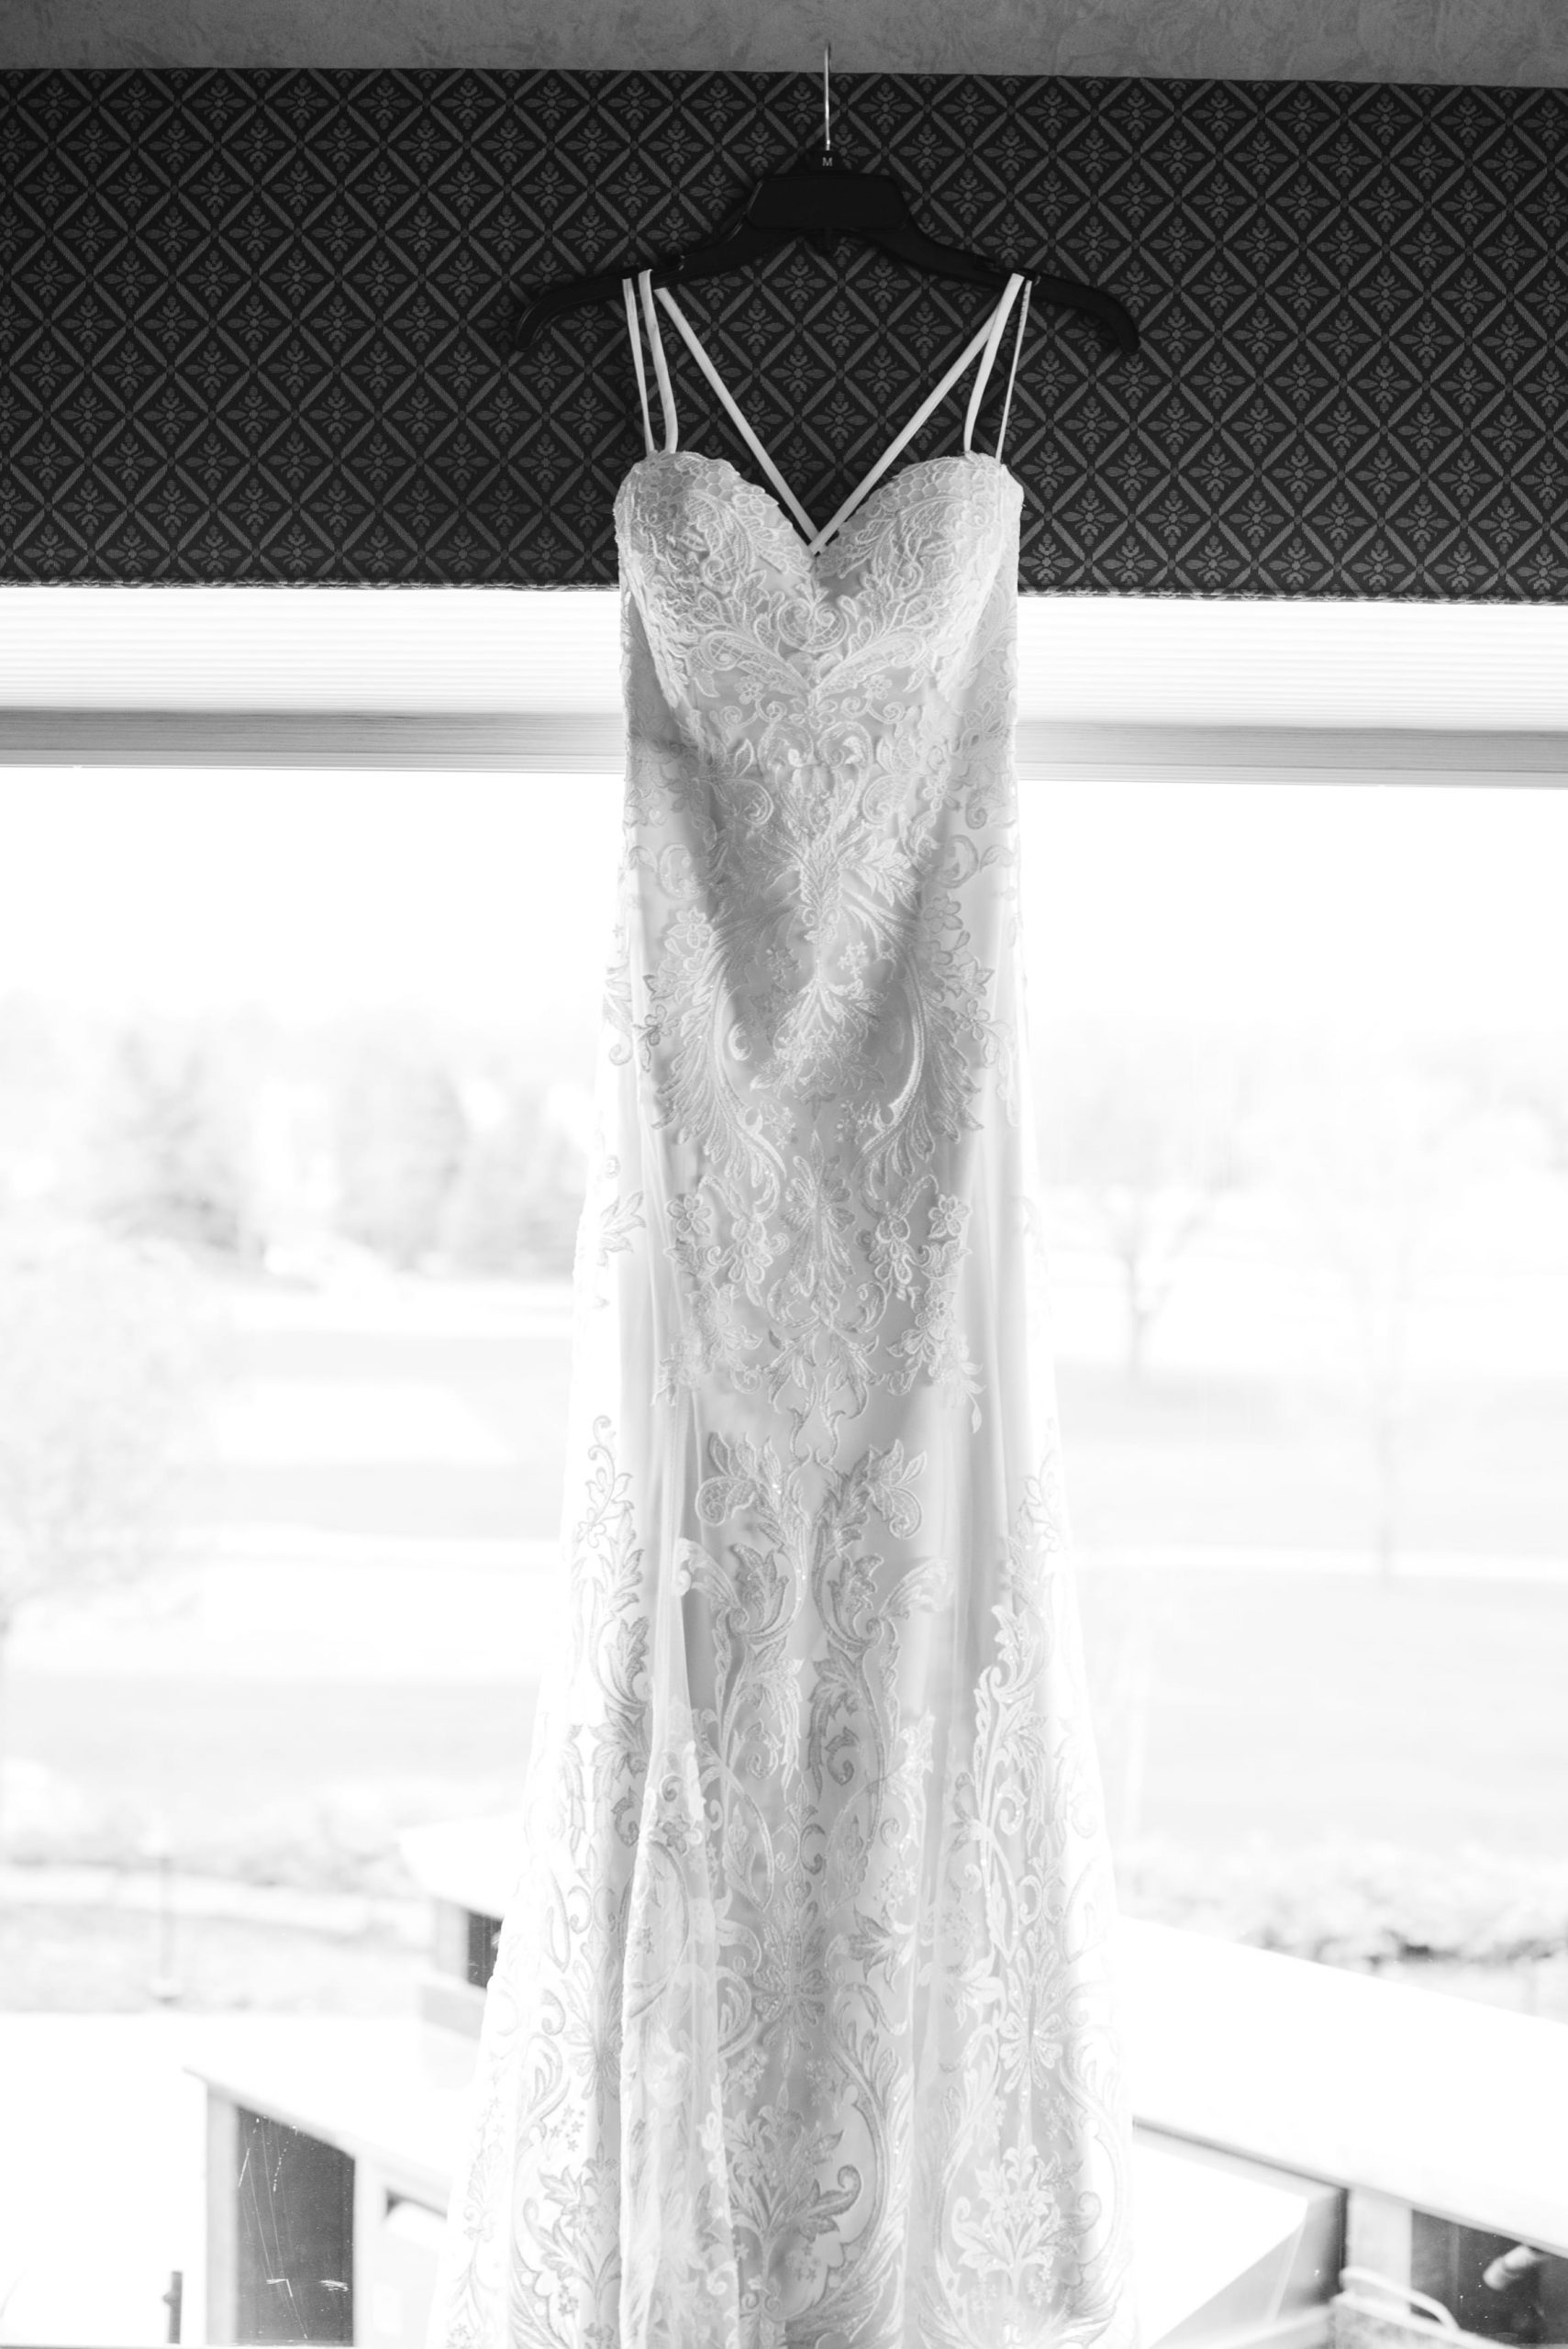 dress hanging from window